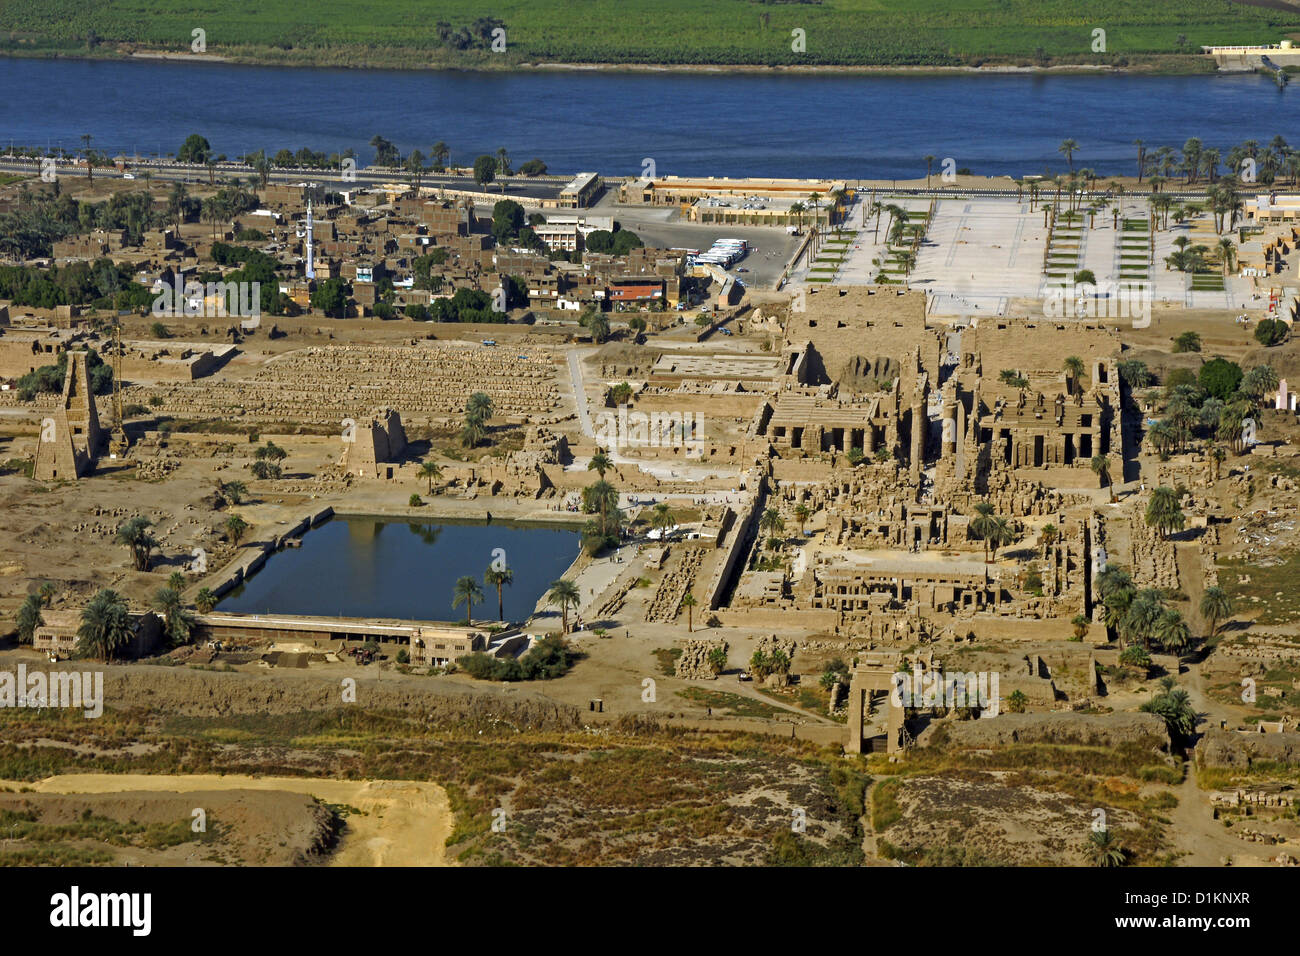 Egypt Luxor Karnak Temple Nile River Valley From The Air West Bank Stock Photo